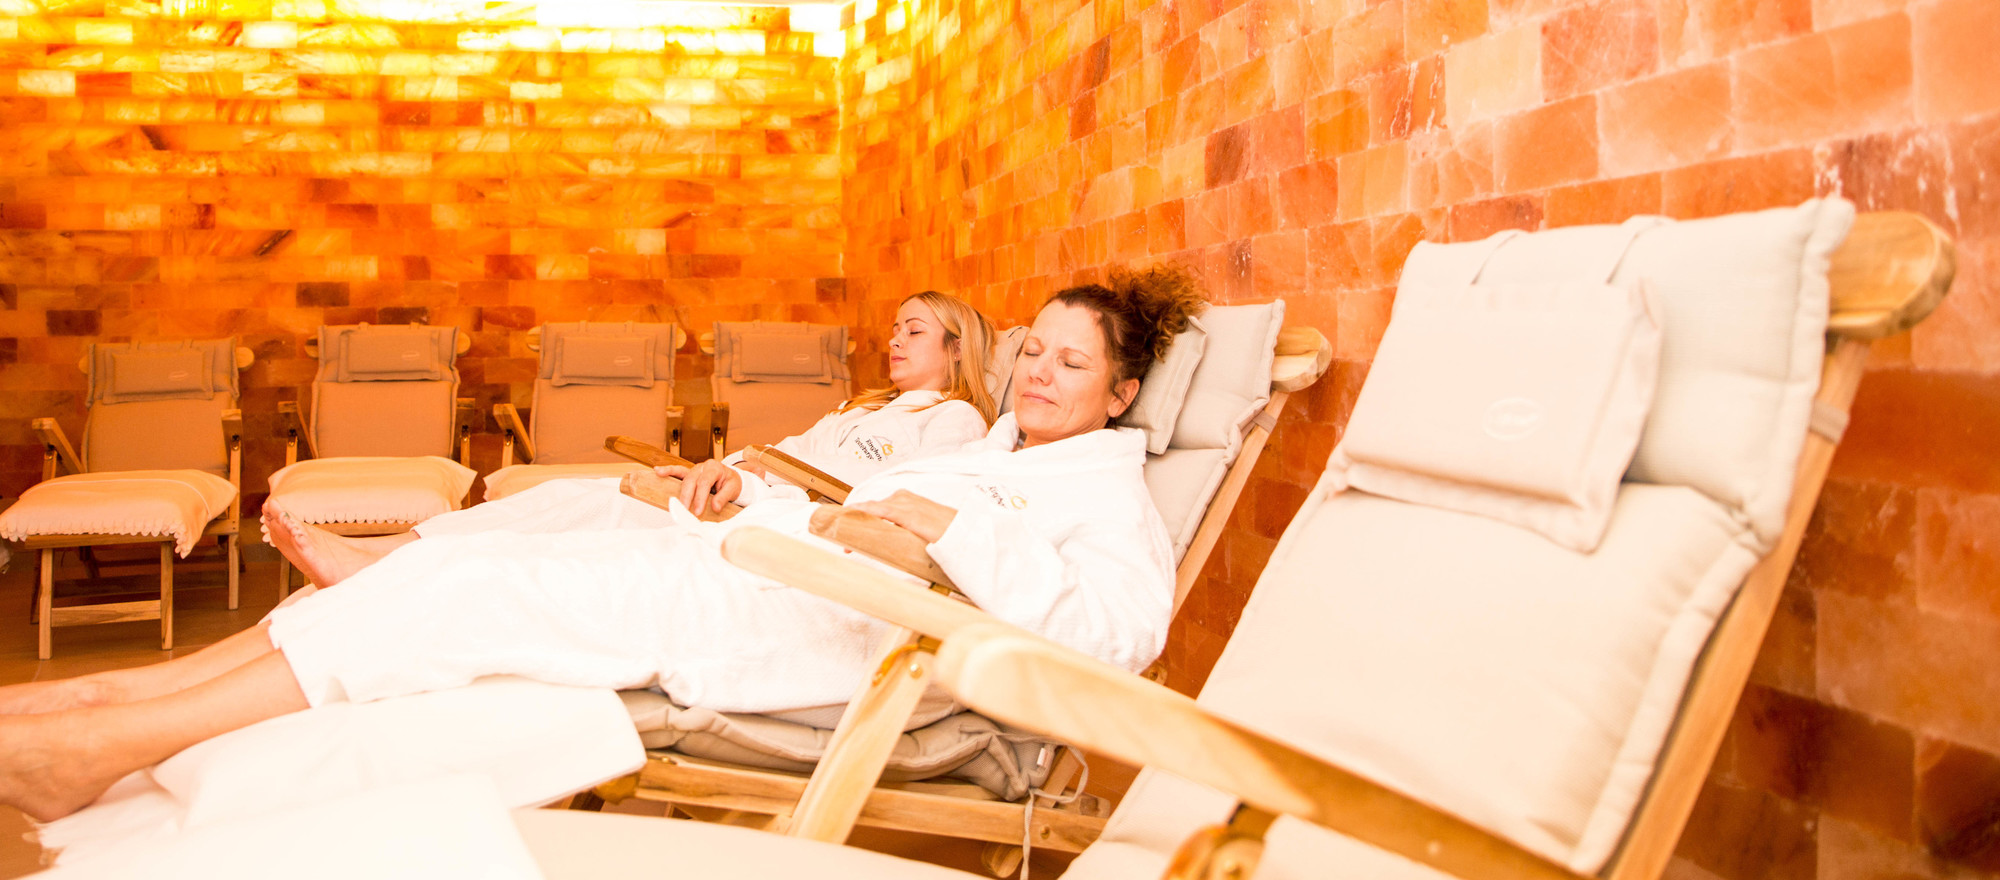 Relax in the spa area of the the 4-star-superior hotel Ringhotel Teutoburger Wald in Tecklenburg